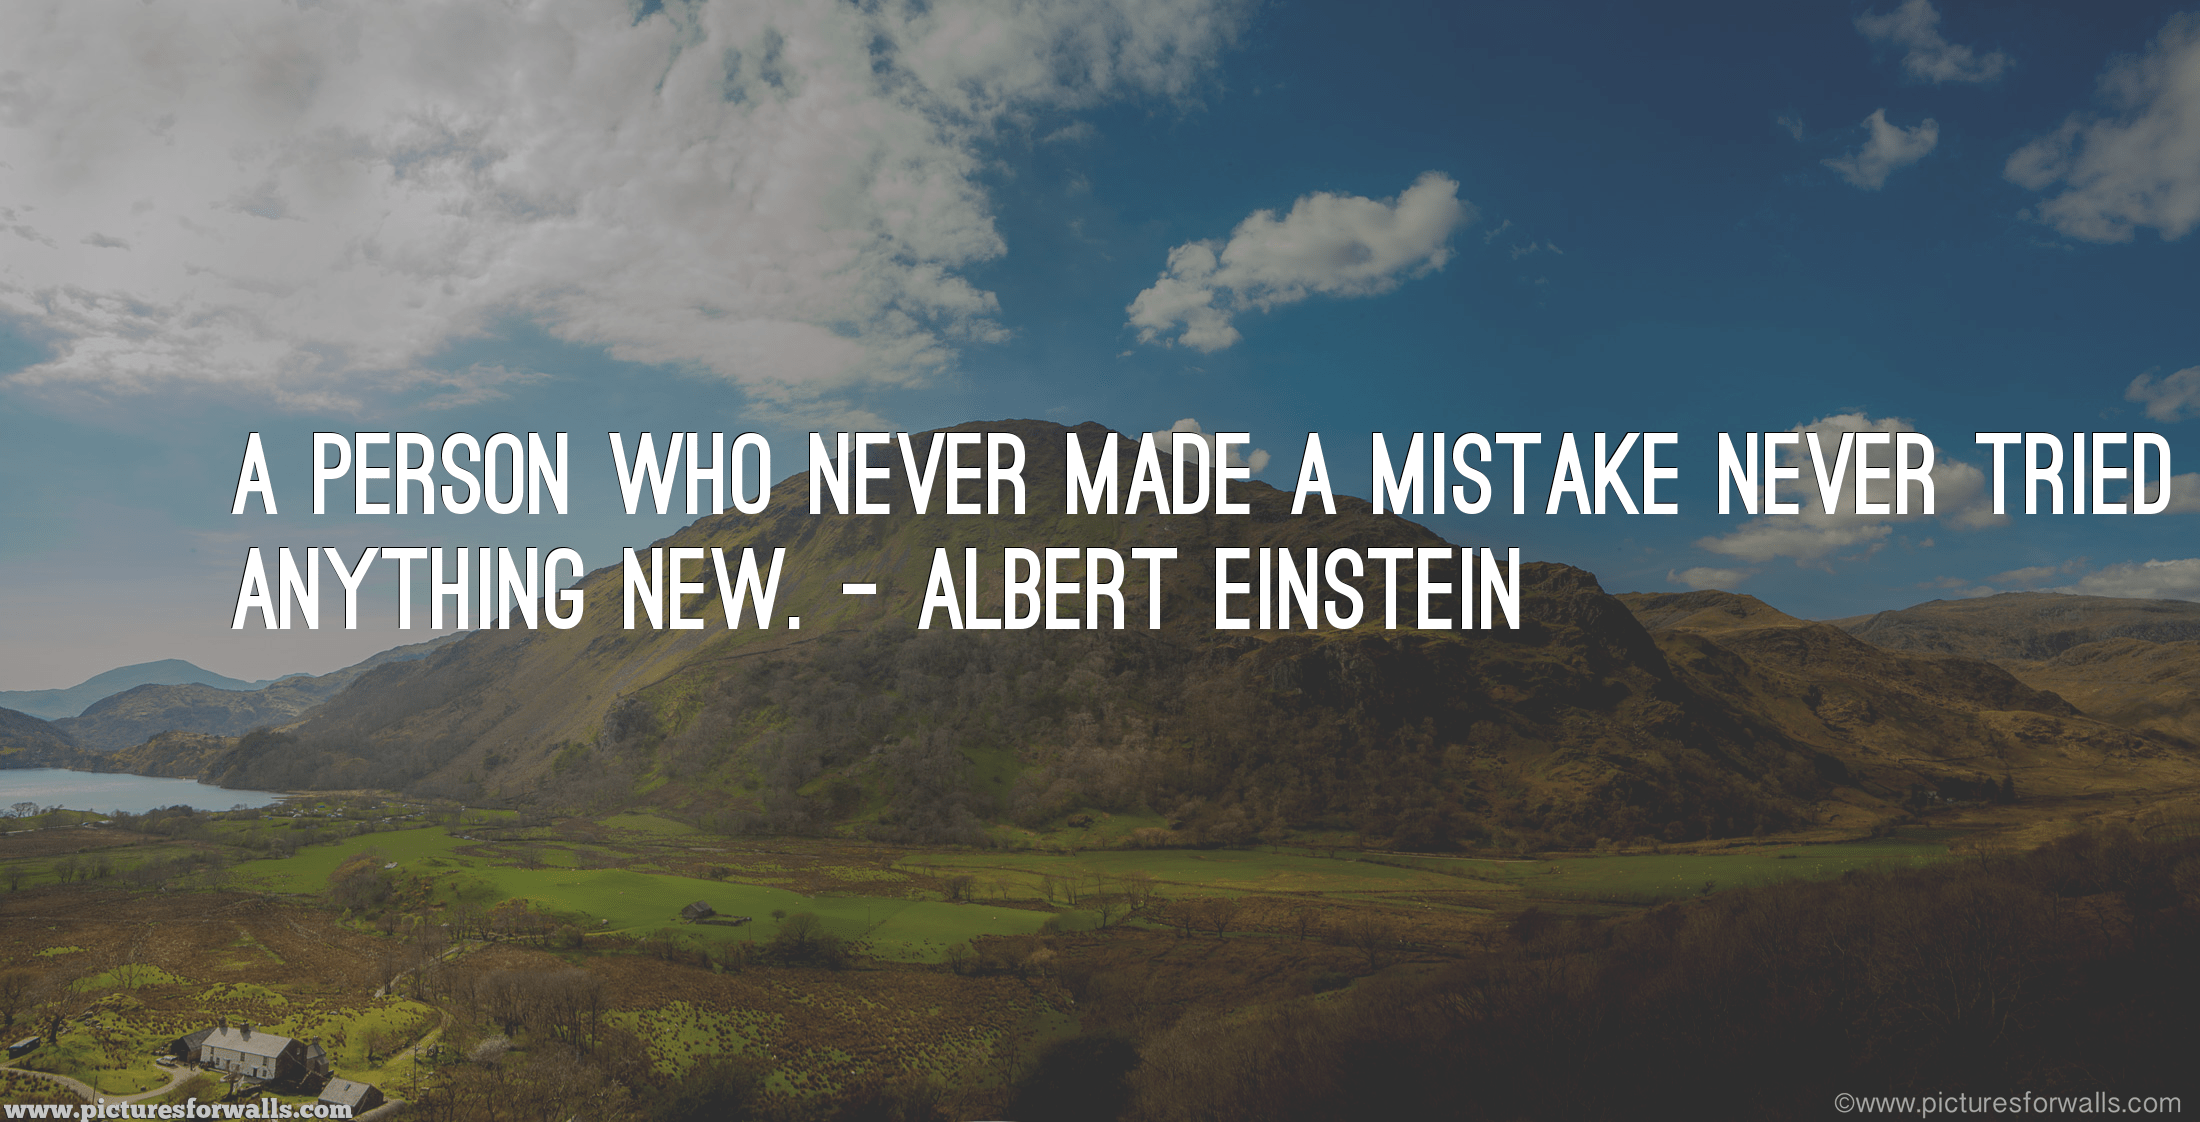 A Person who never made a mistake… by Albert Einstein [2200 x 1122]